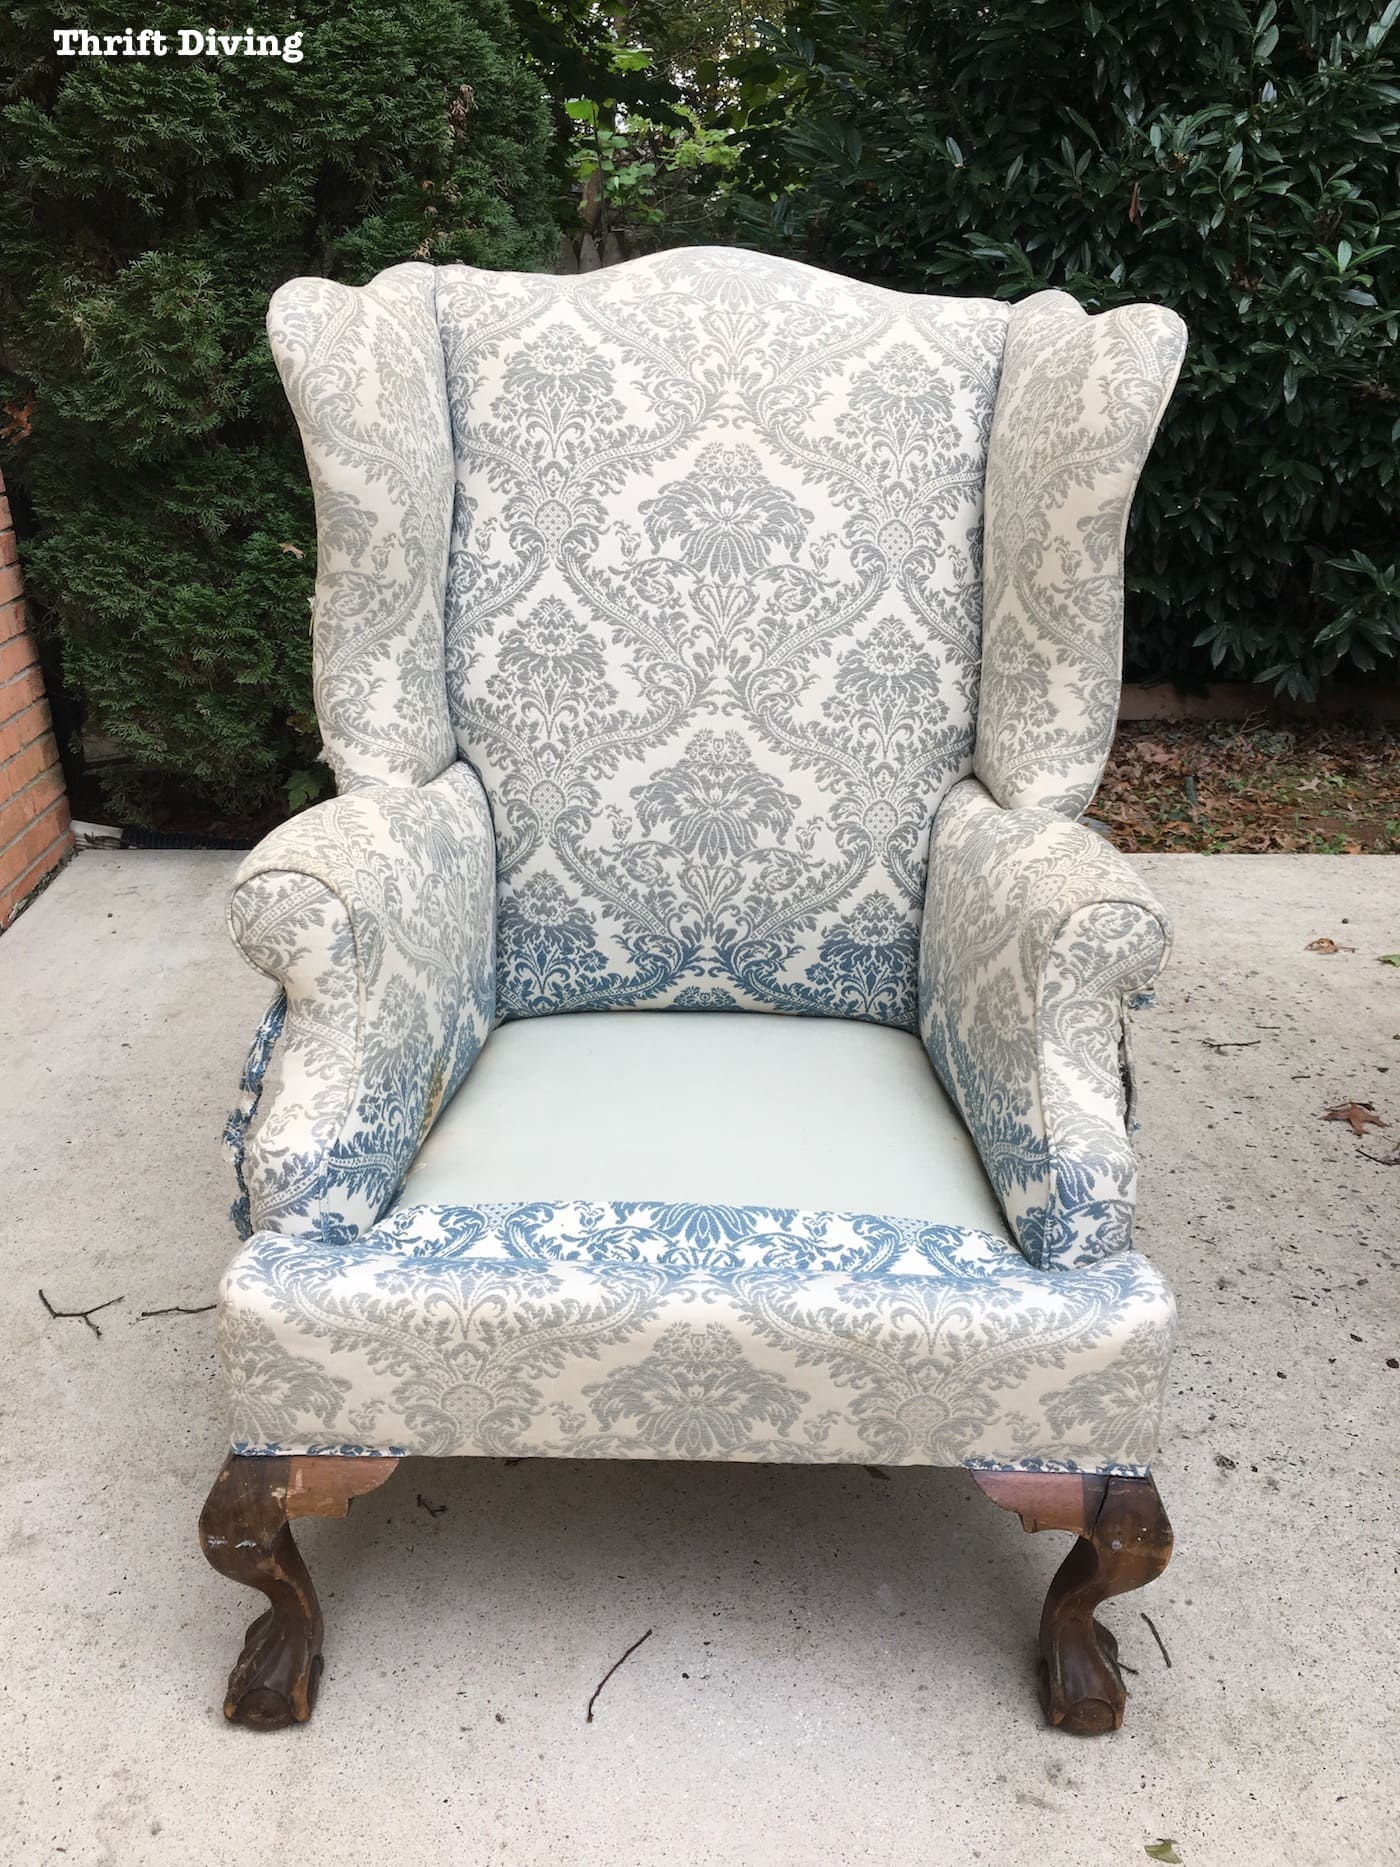 how to reupholster a wingback chair how to reupholster a wingback chair thrift diving